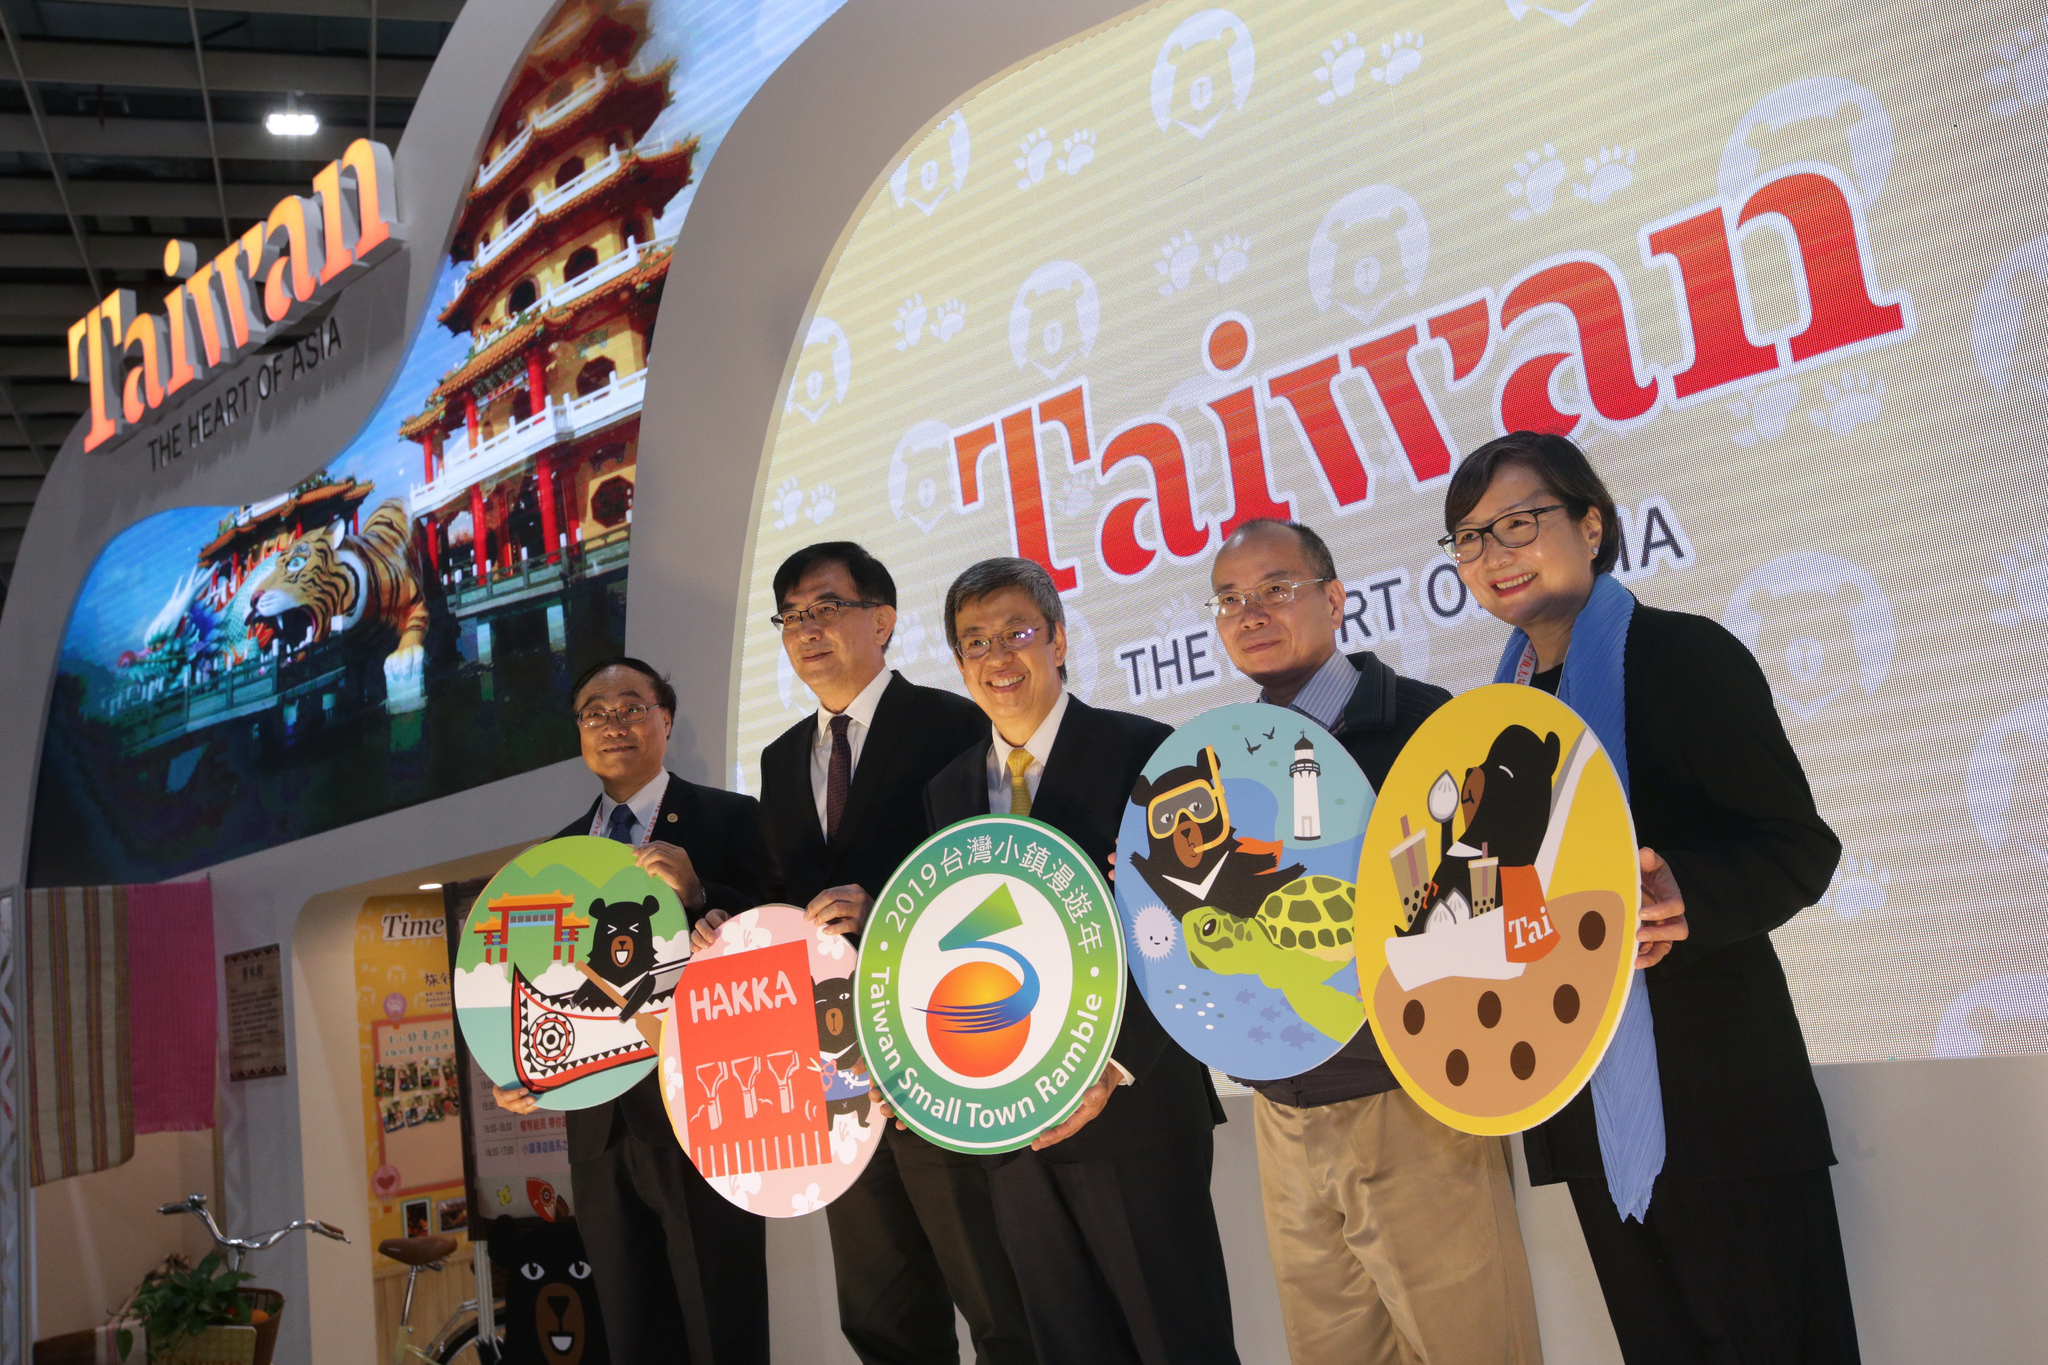 New Southbound Policy。Vice President Chen Chien-jen (center) is joined by government officials in opening the Taipei International Travel Fair Nov. 23 in Taipei City. (Courtesy of Office of the President)